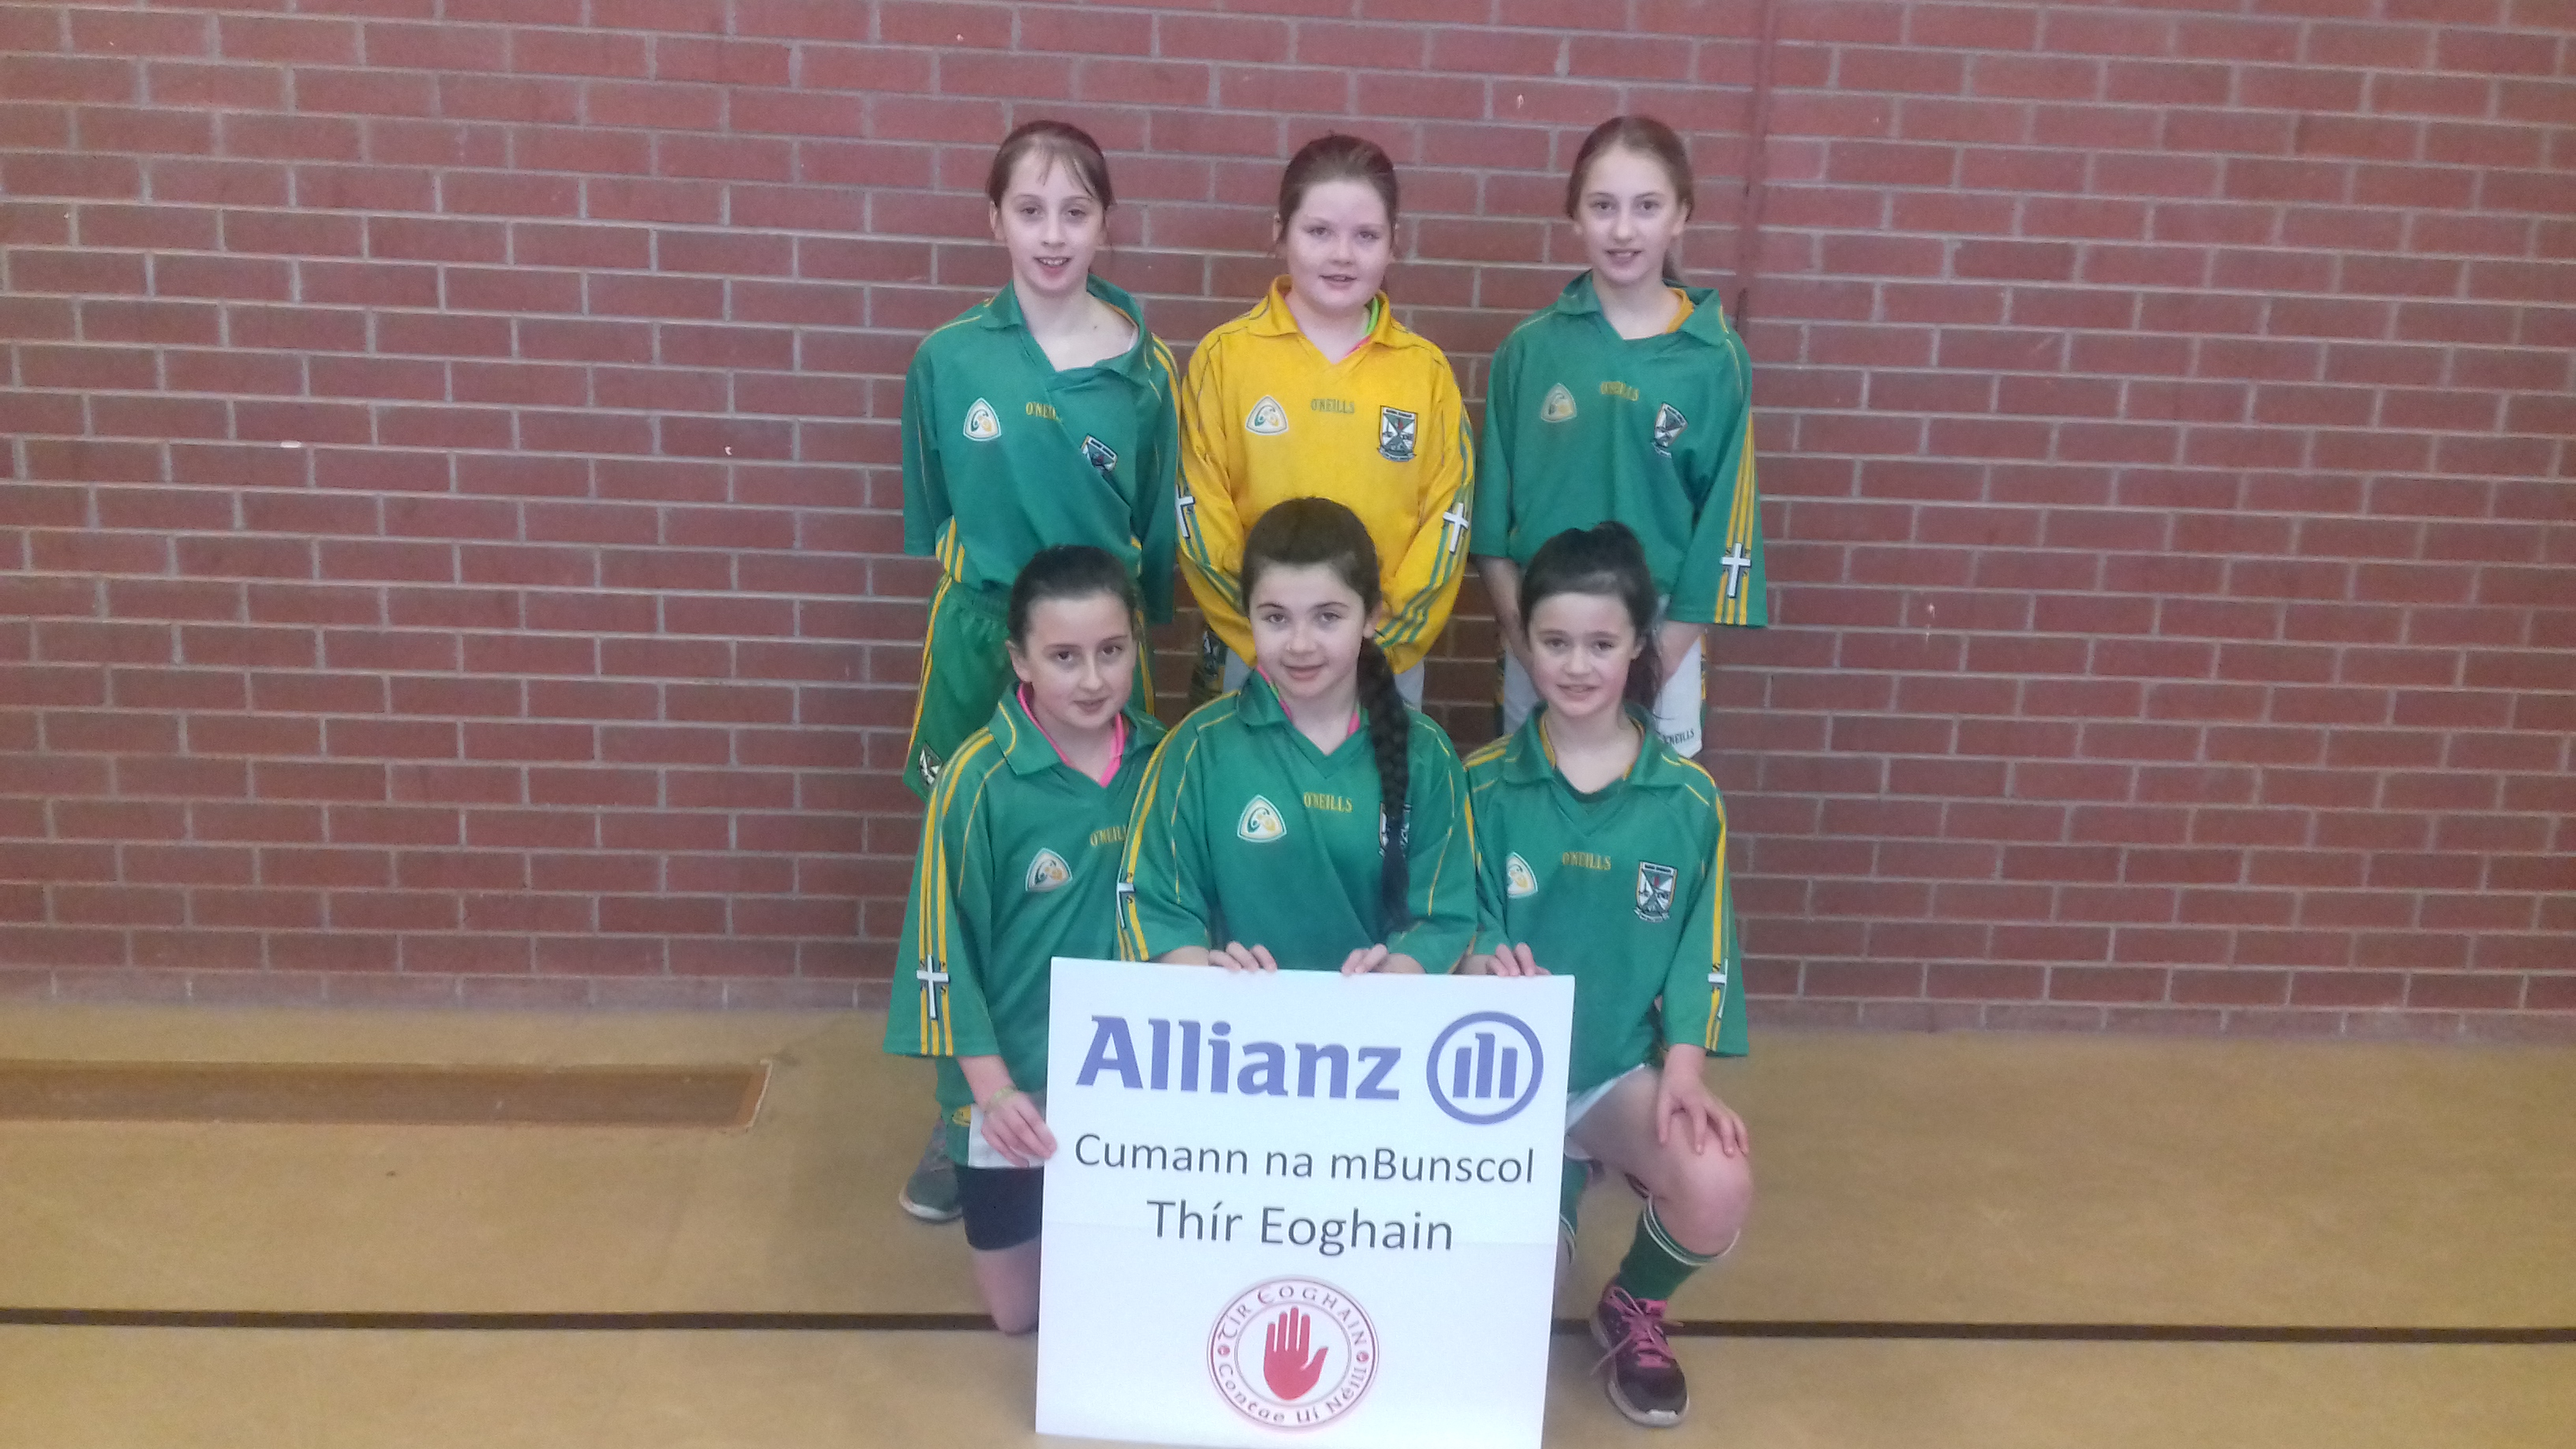 ALLIANZ CUMANN Na mBUNSCOL – GIRLS' INDOOR FOOTBALL HEAT 3: Omagh